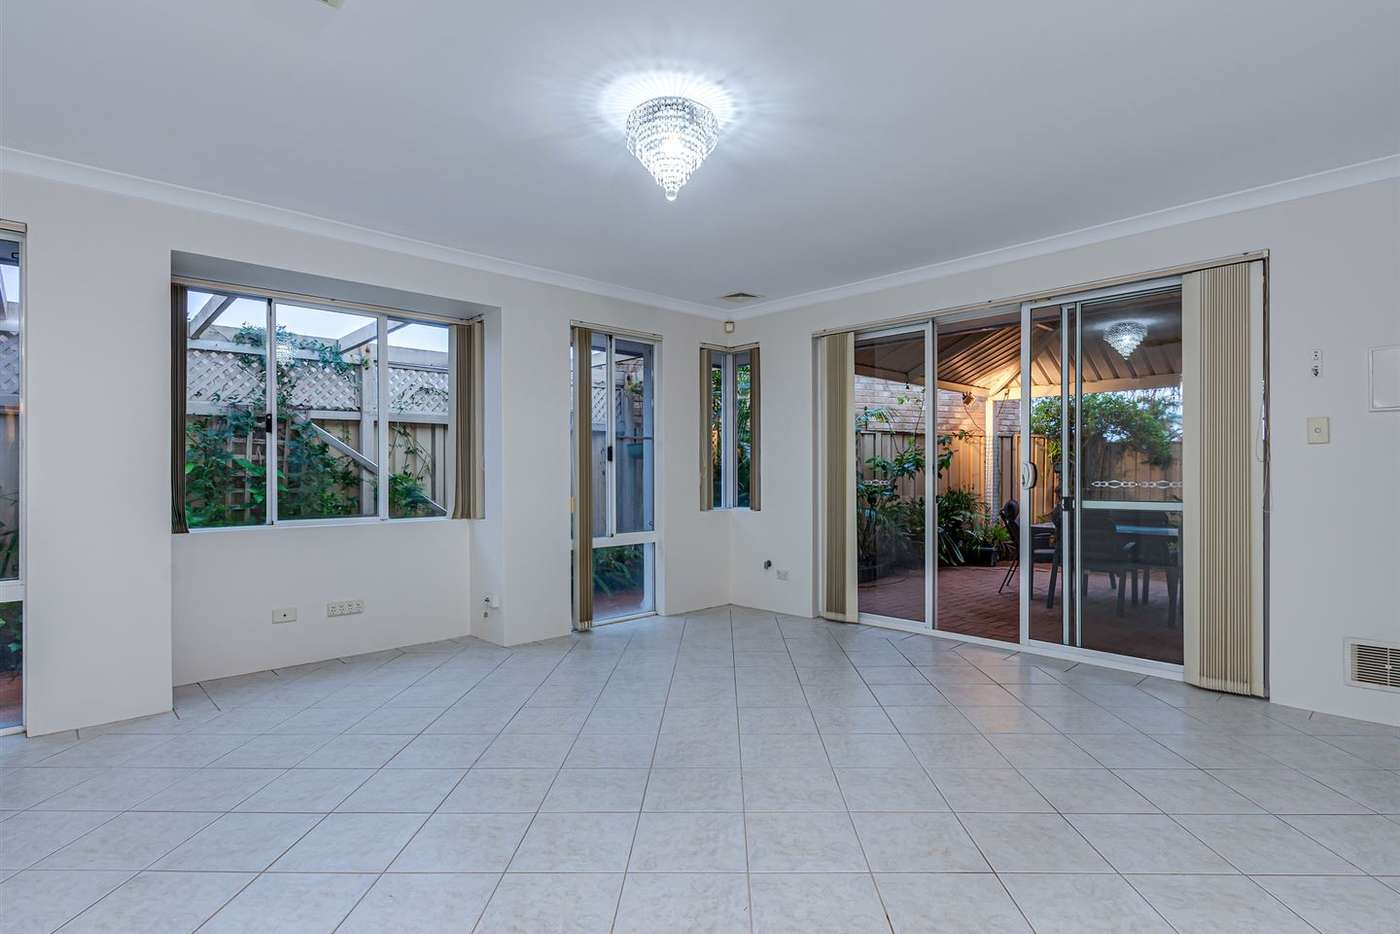 Sixth view of Homely house listing, 38 Oakland Hills Boulevard, Currambine WA 6028